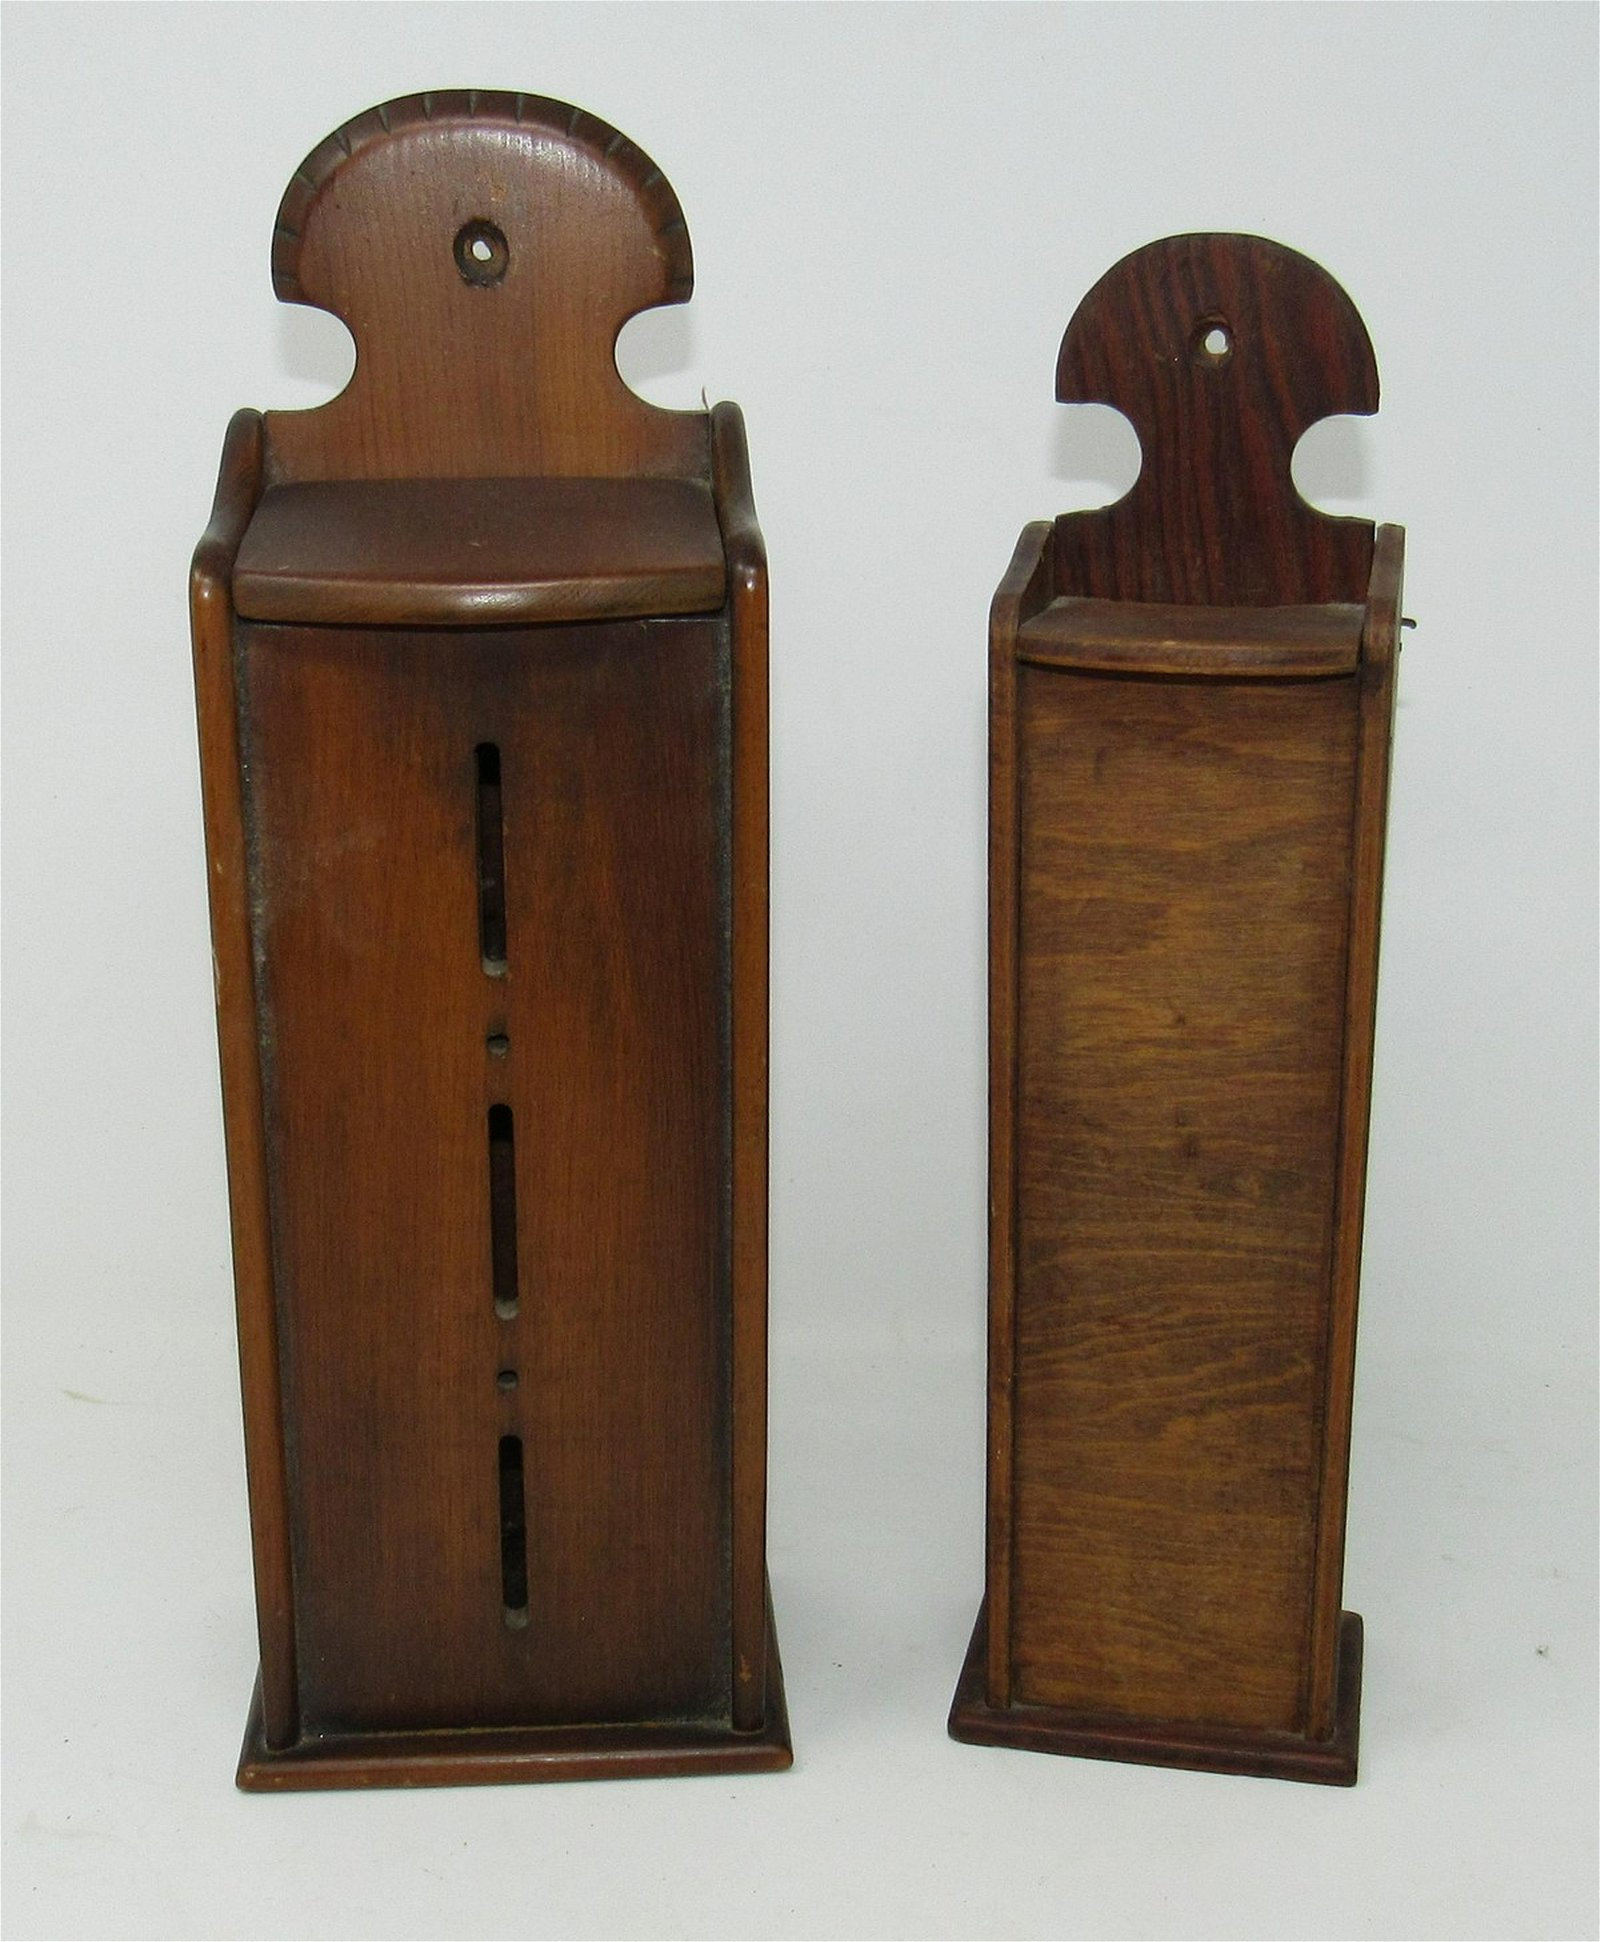 2 Woodenware Wall Boxes